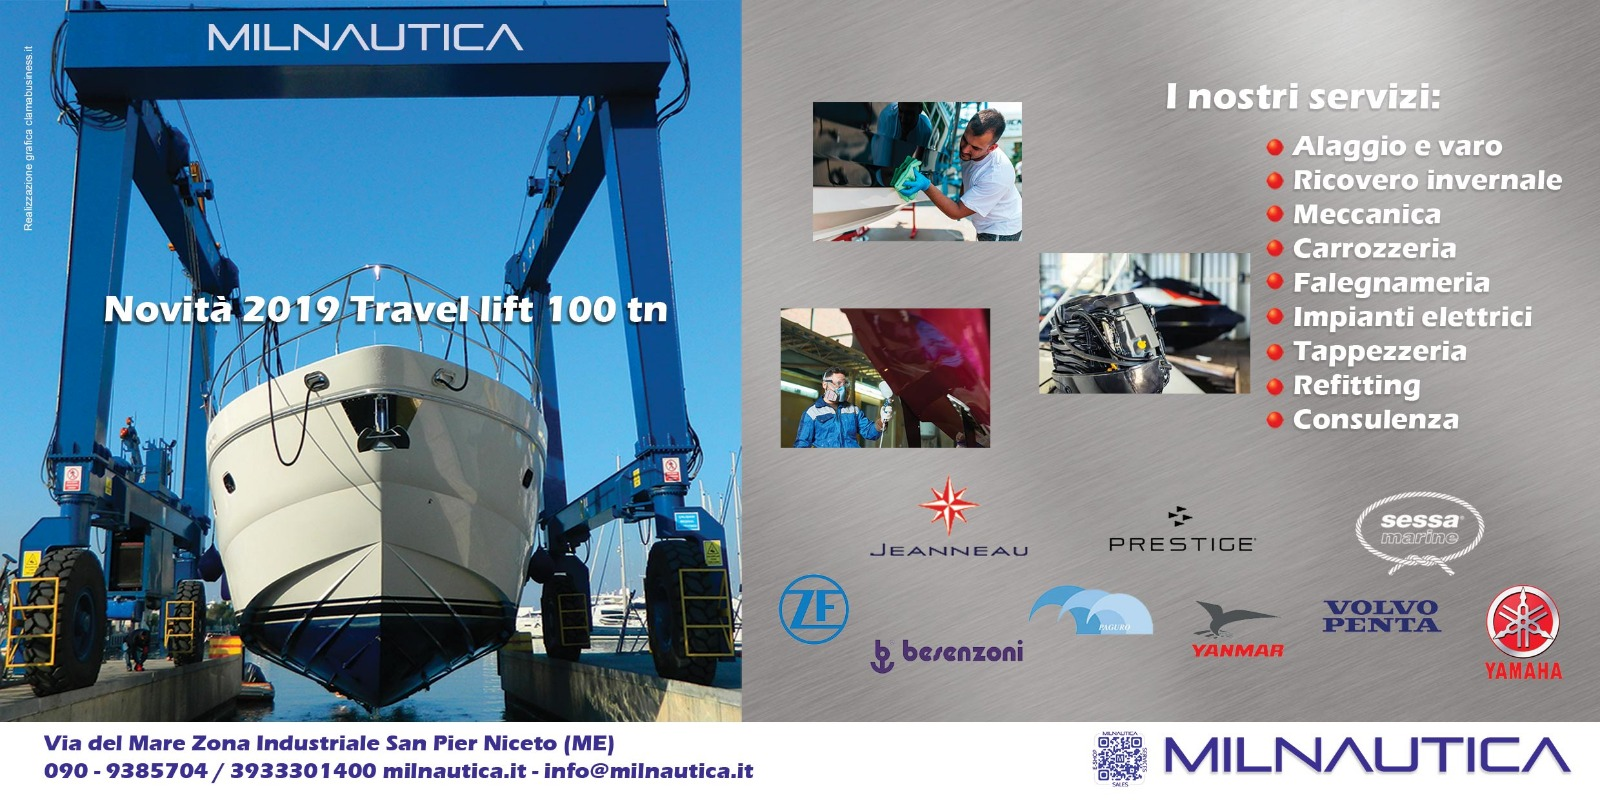 Travel lift Milnautica